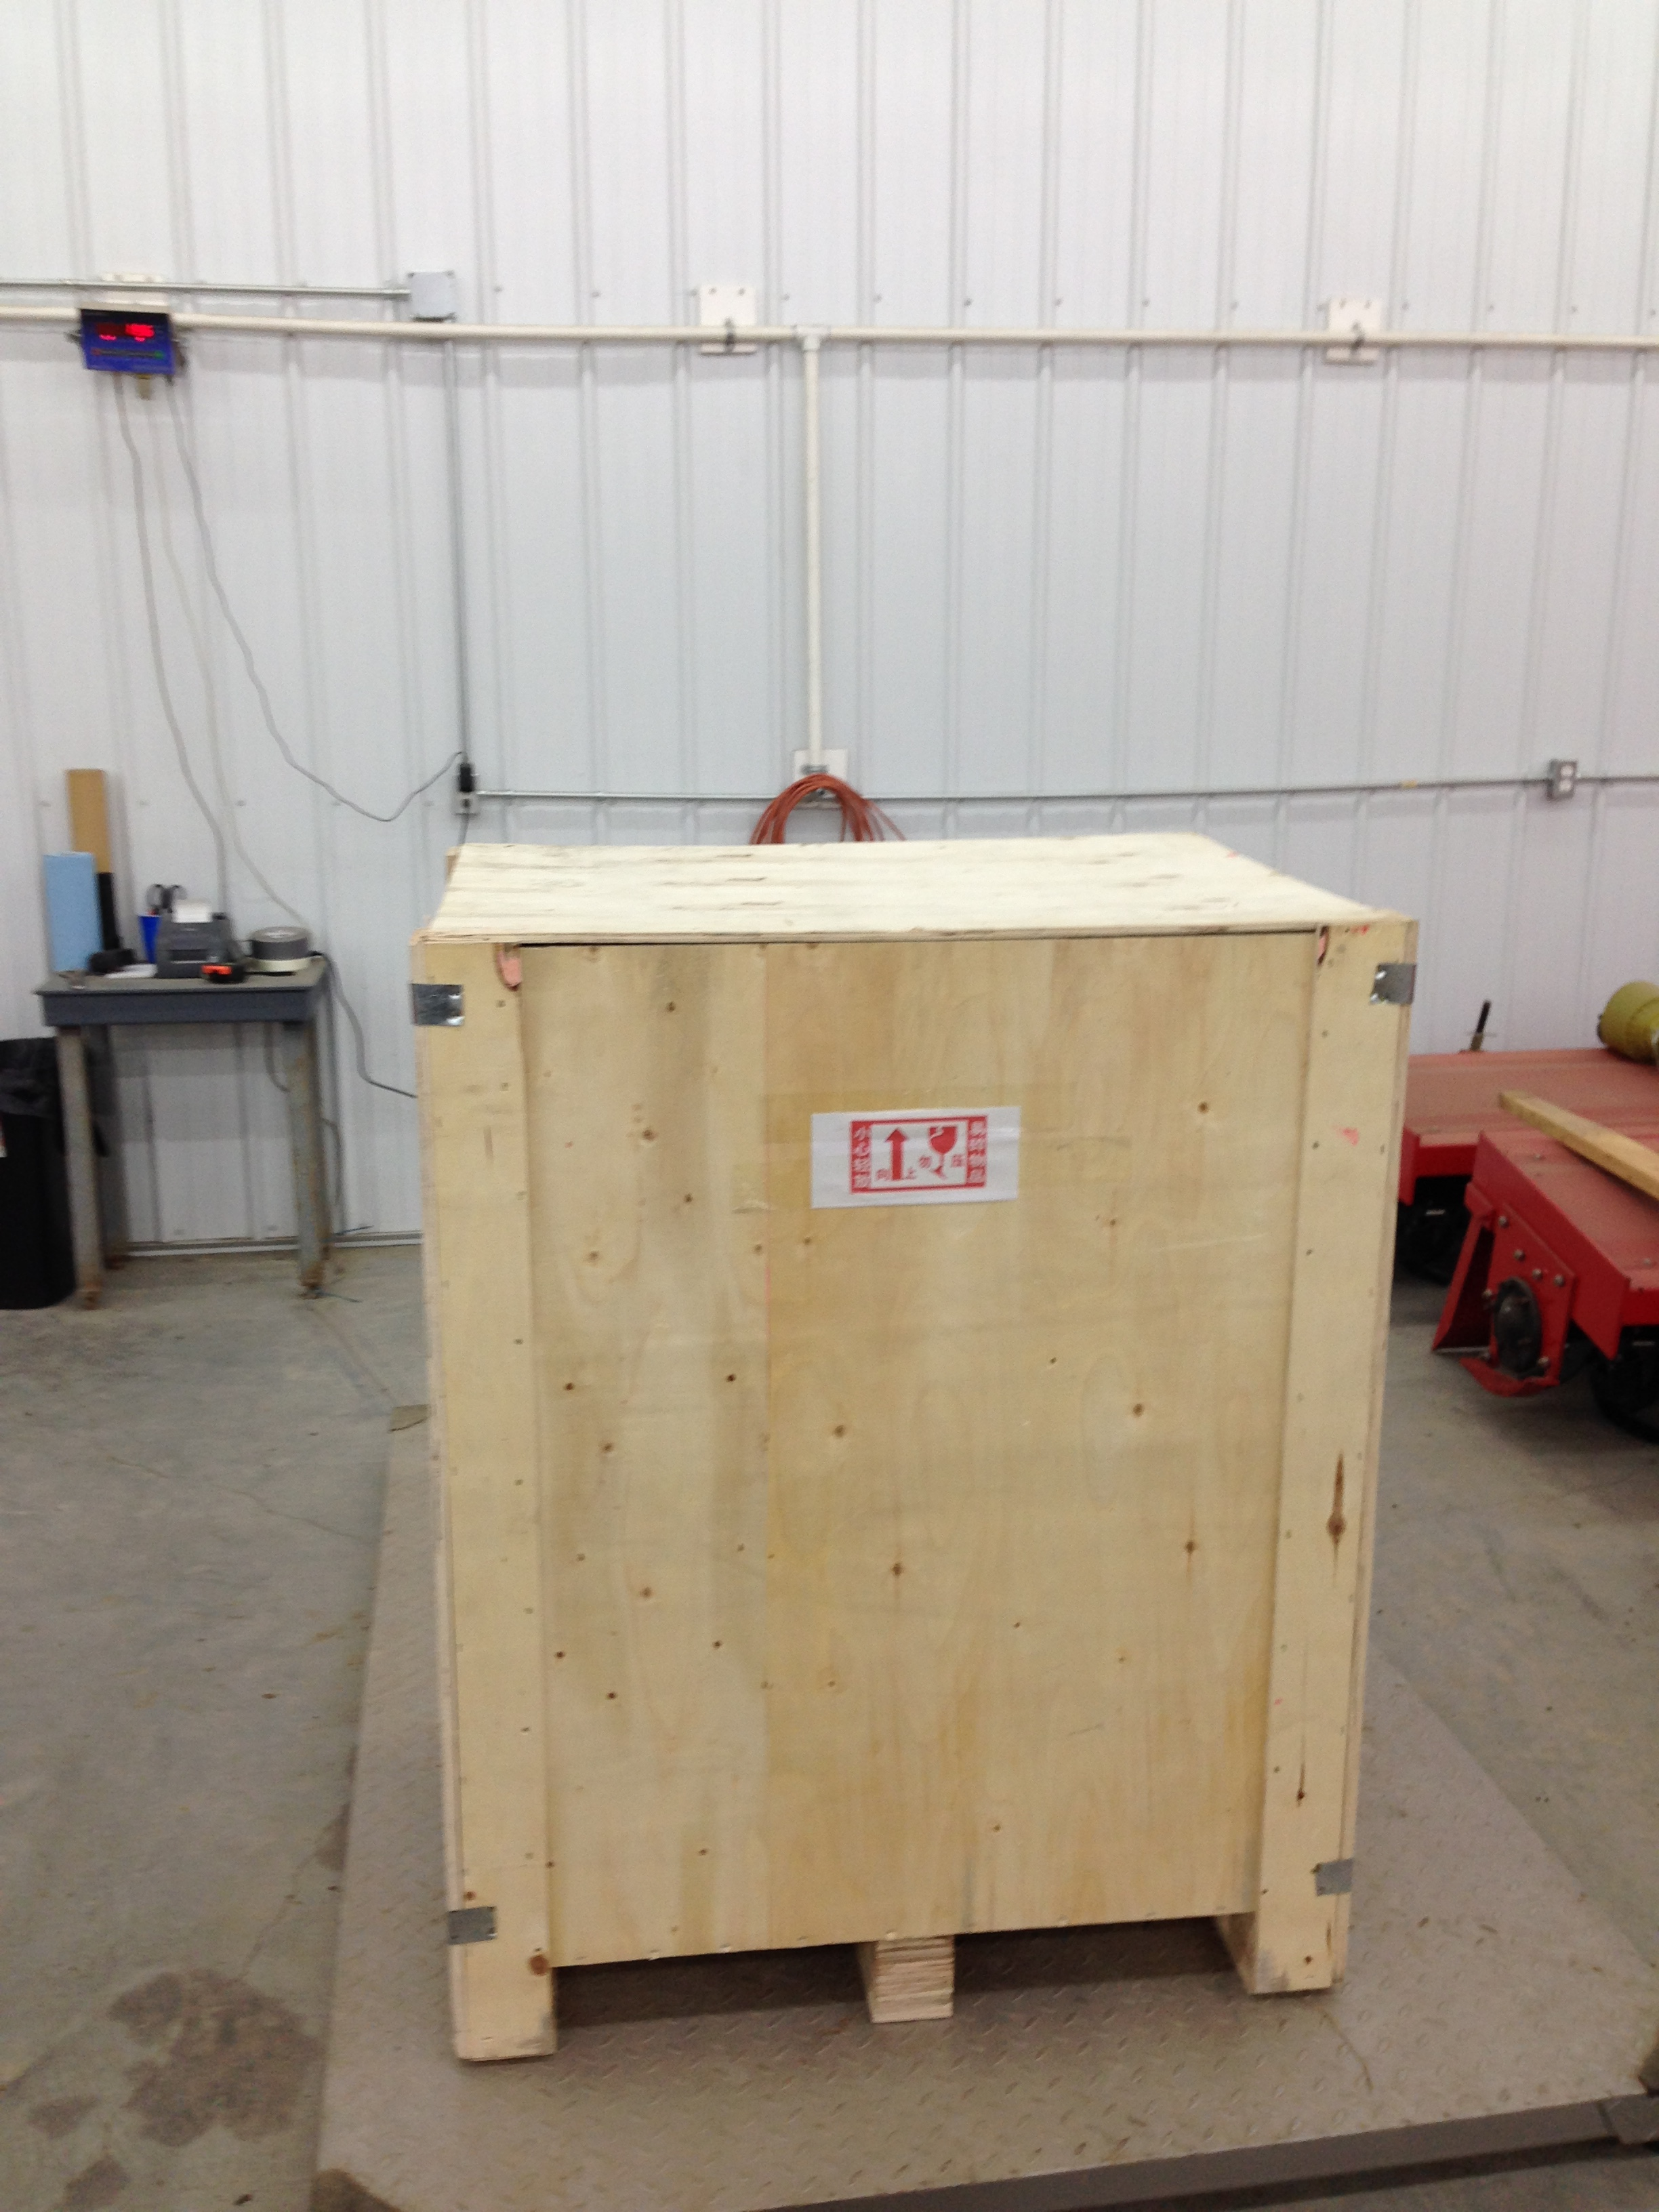 crated popcorn poppers.JPG?1497737721314